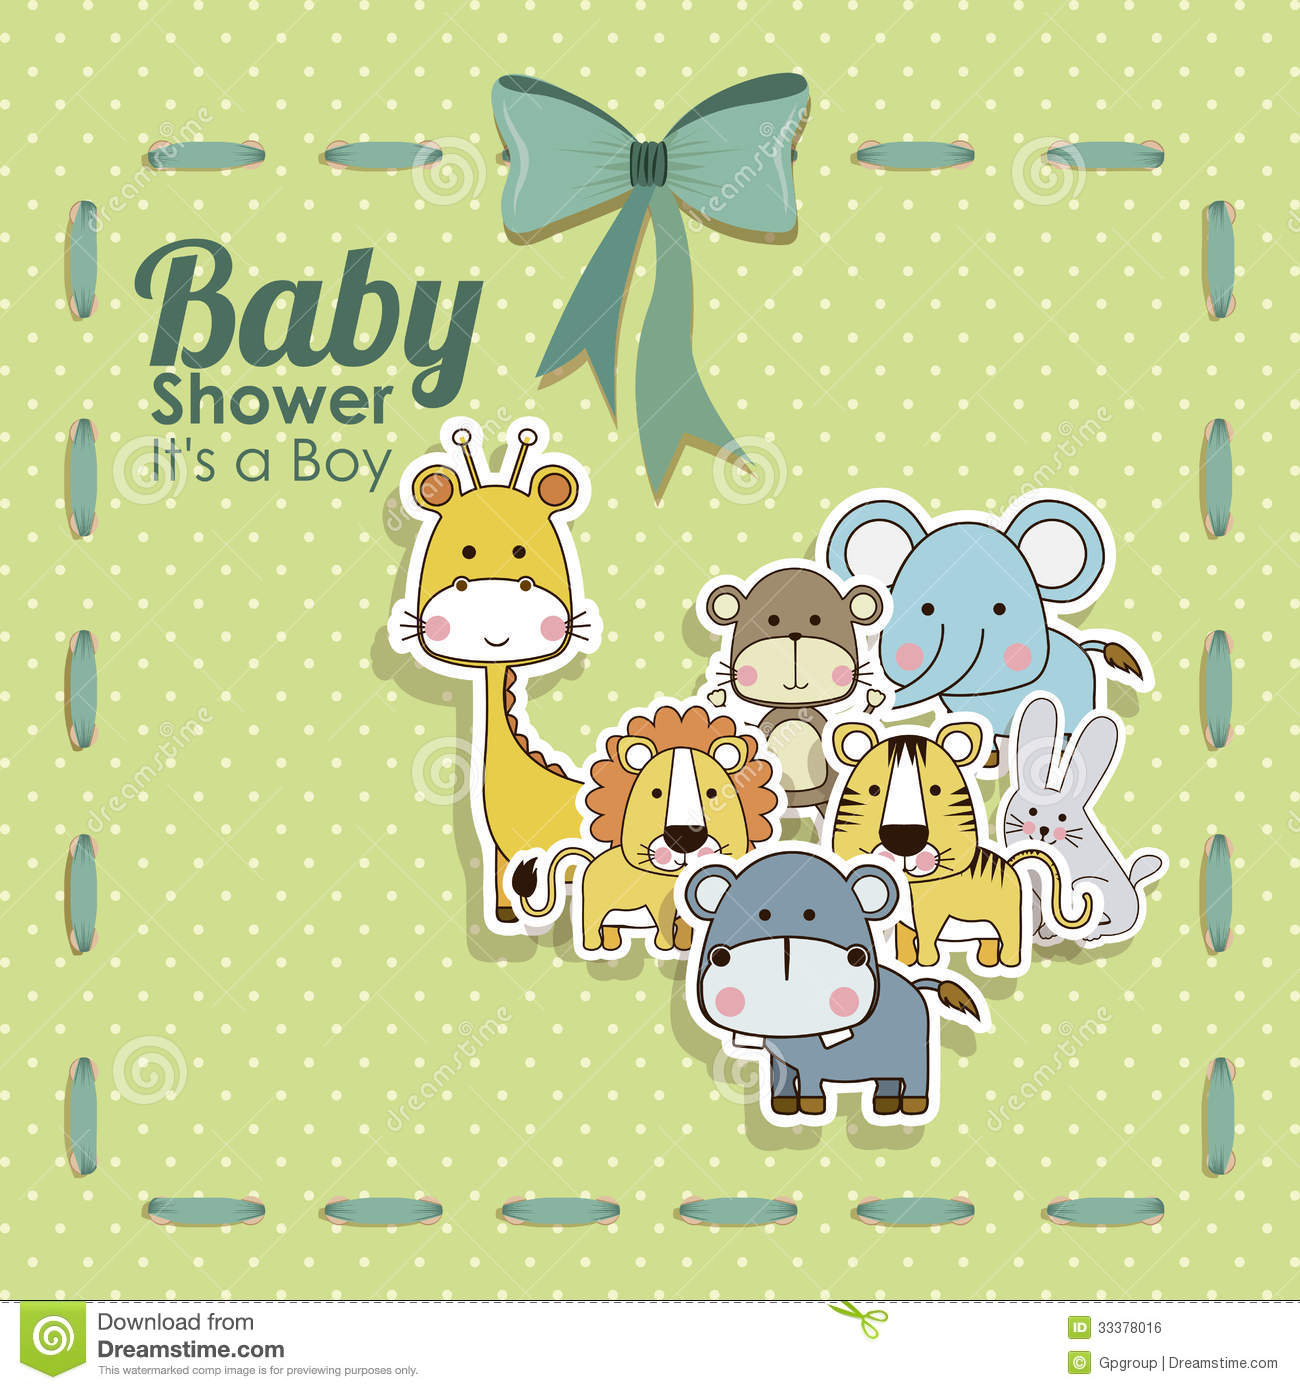 Free Baby Shower Invitations Templates was amazing invitation sample